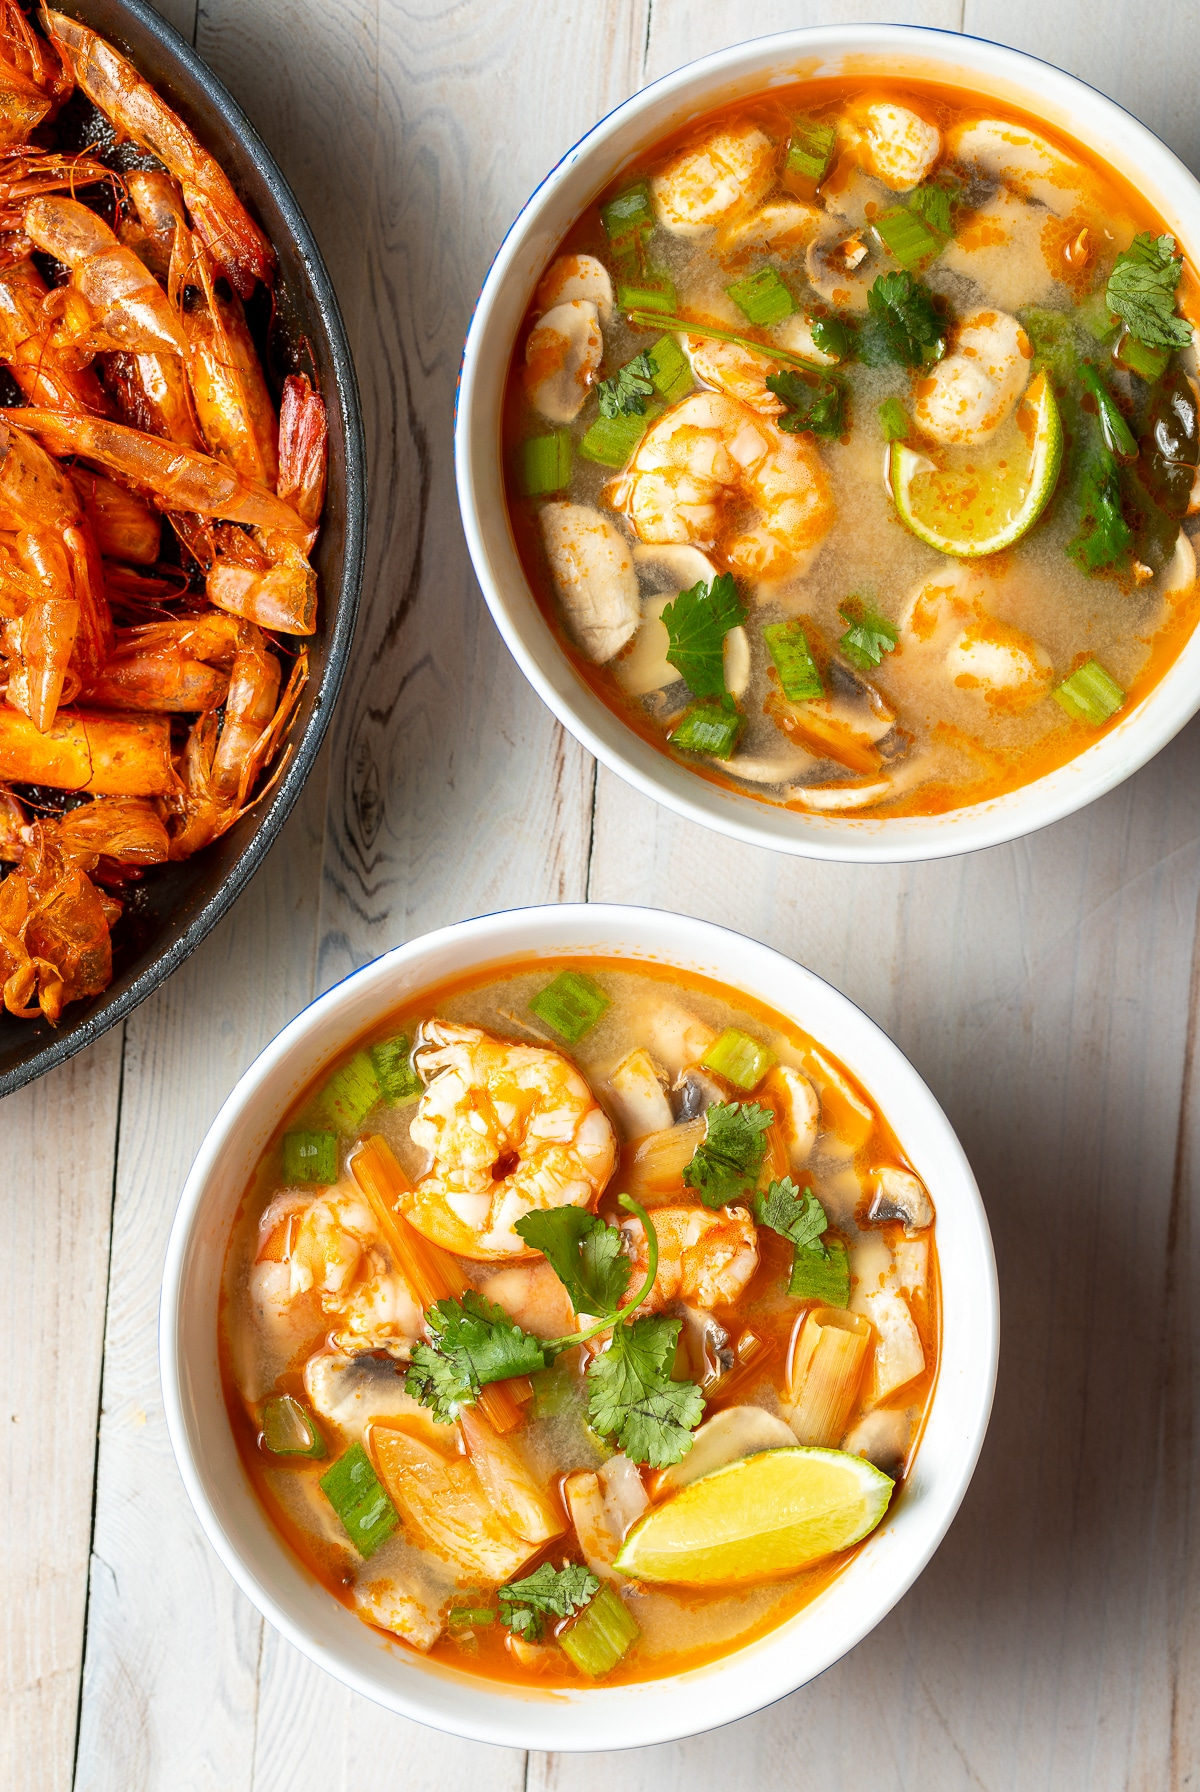 Tom Yum Soup (Hot and Sour Soup)